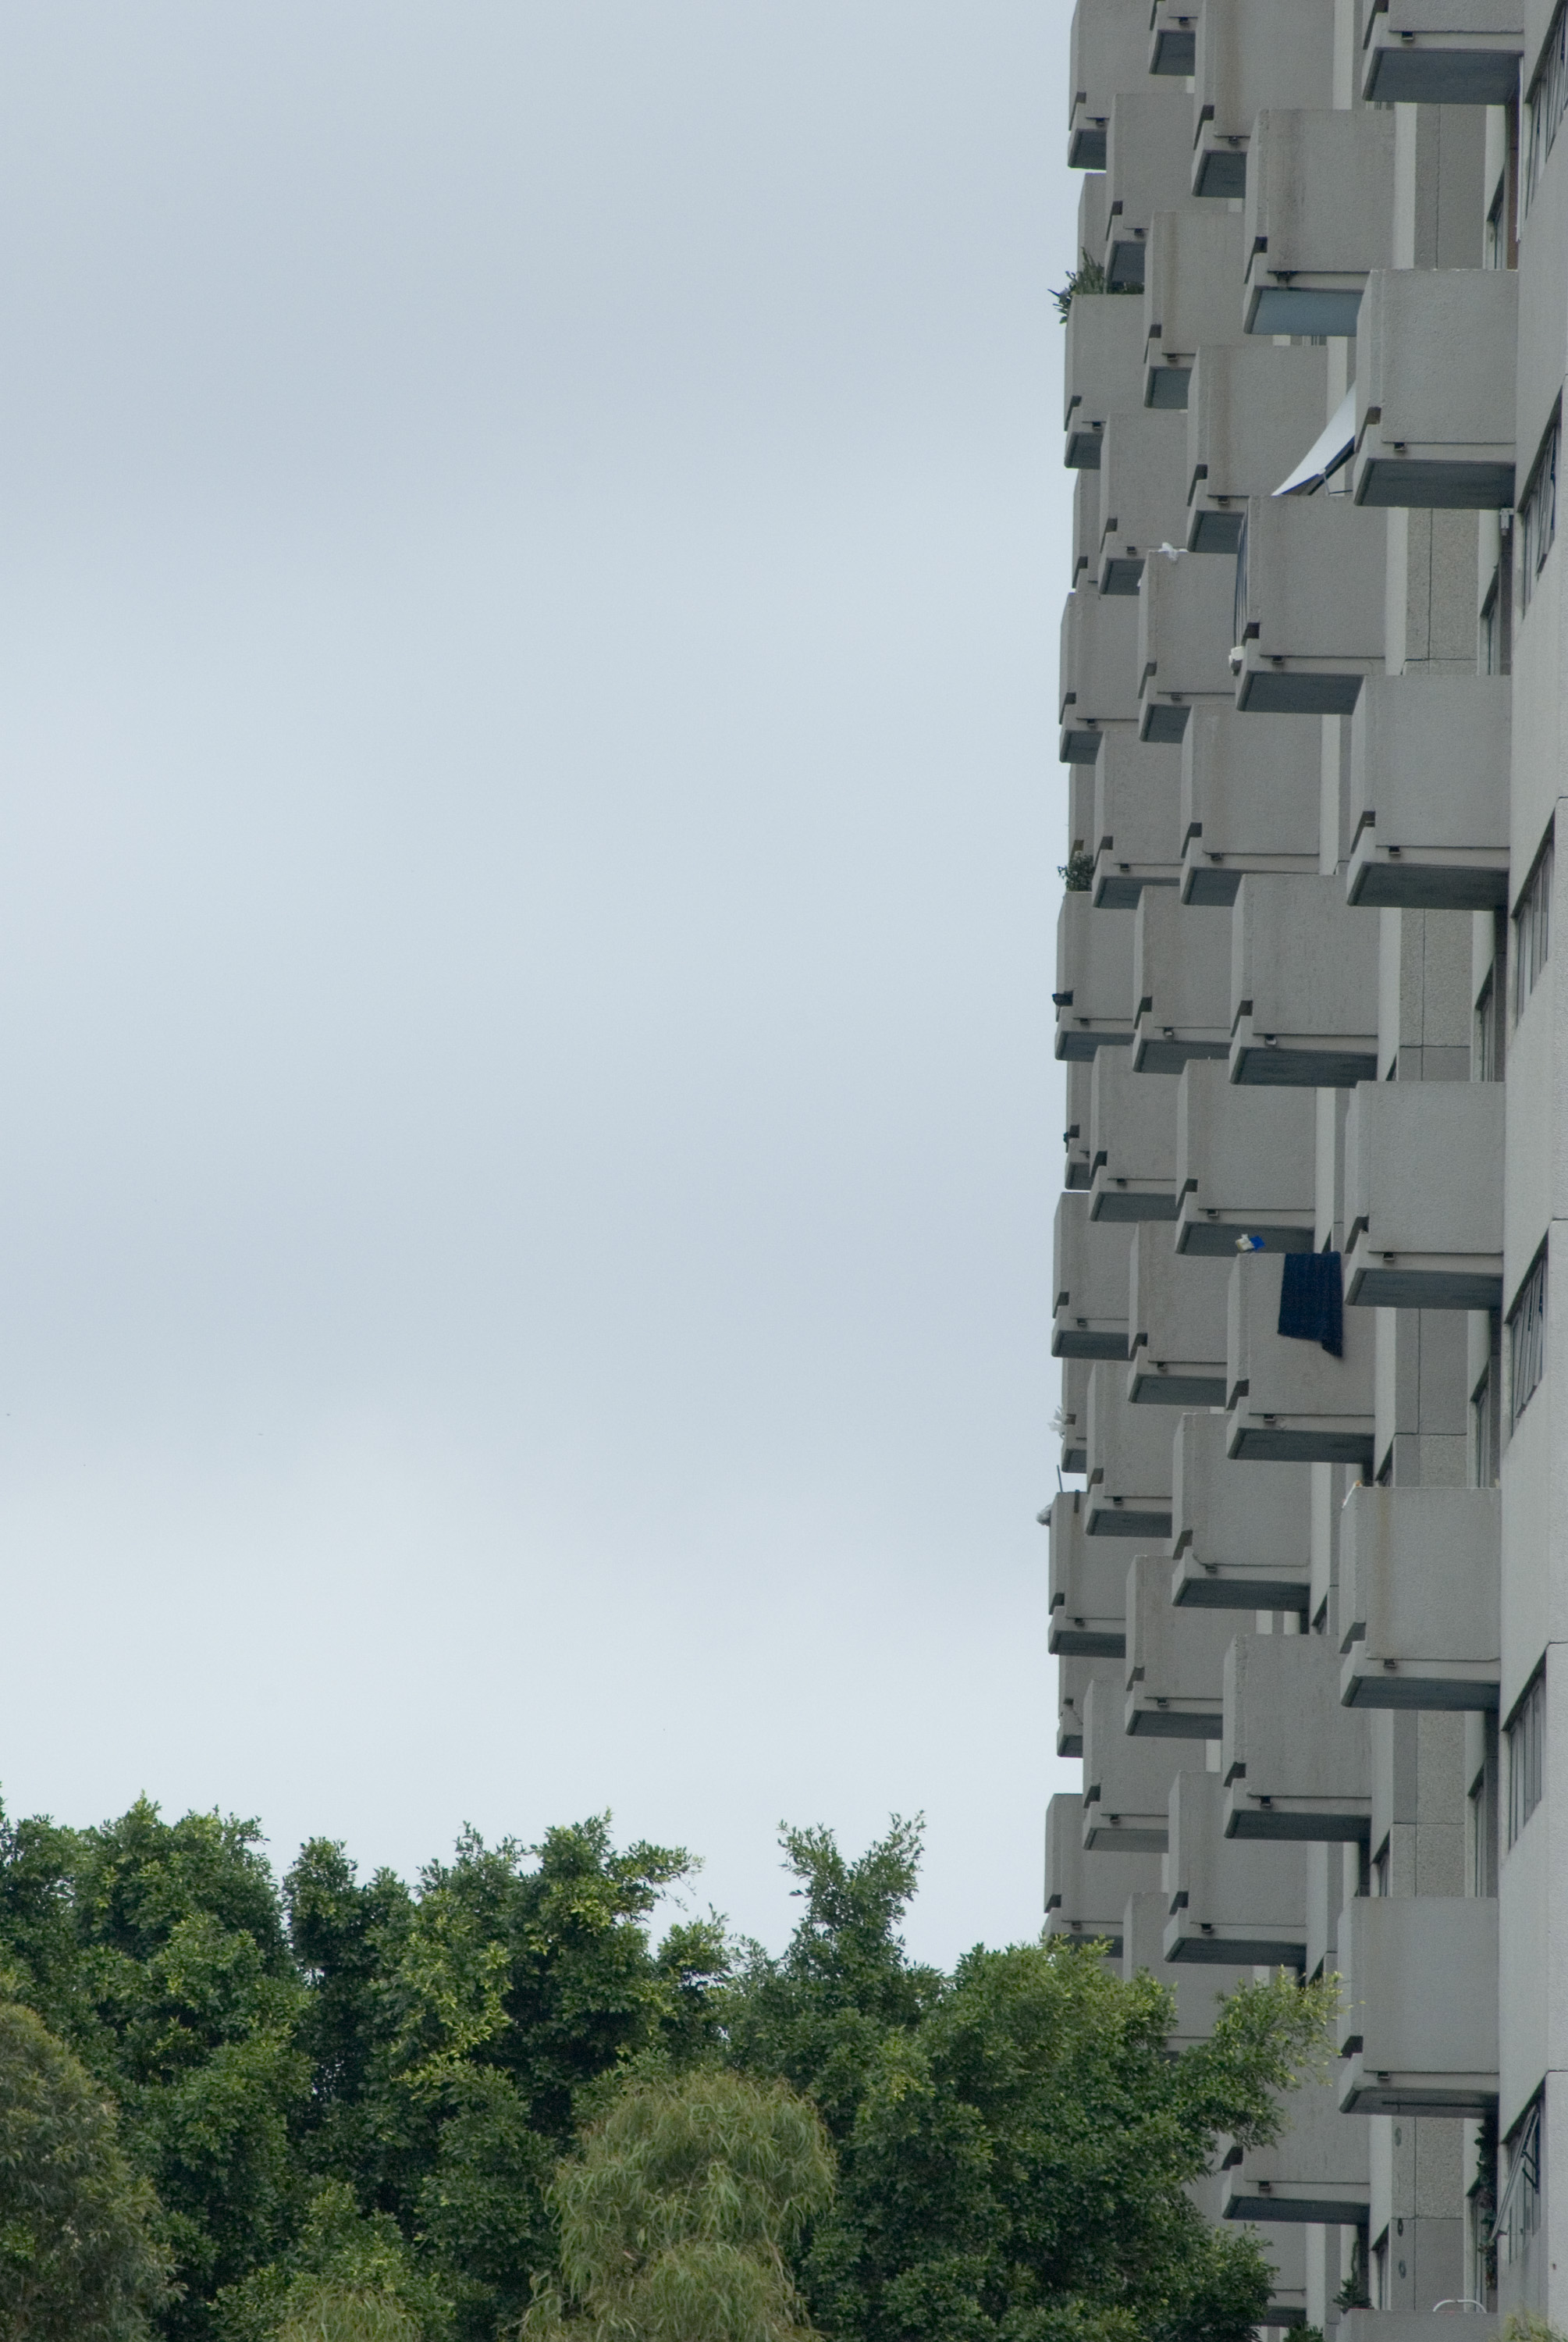 balconies on concrete towers